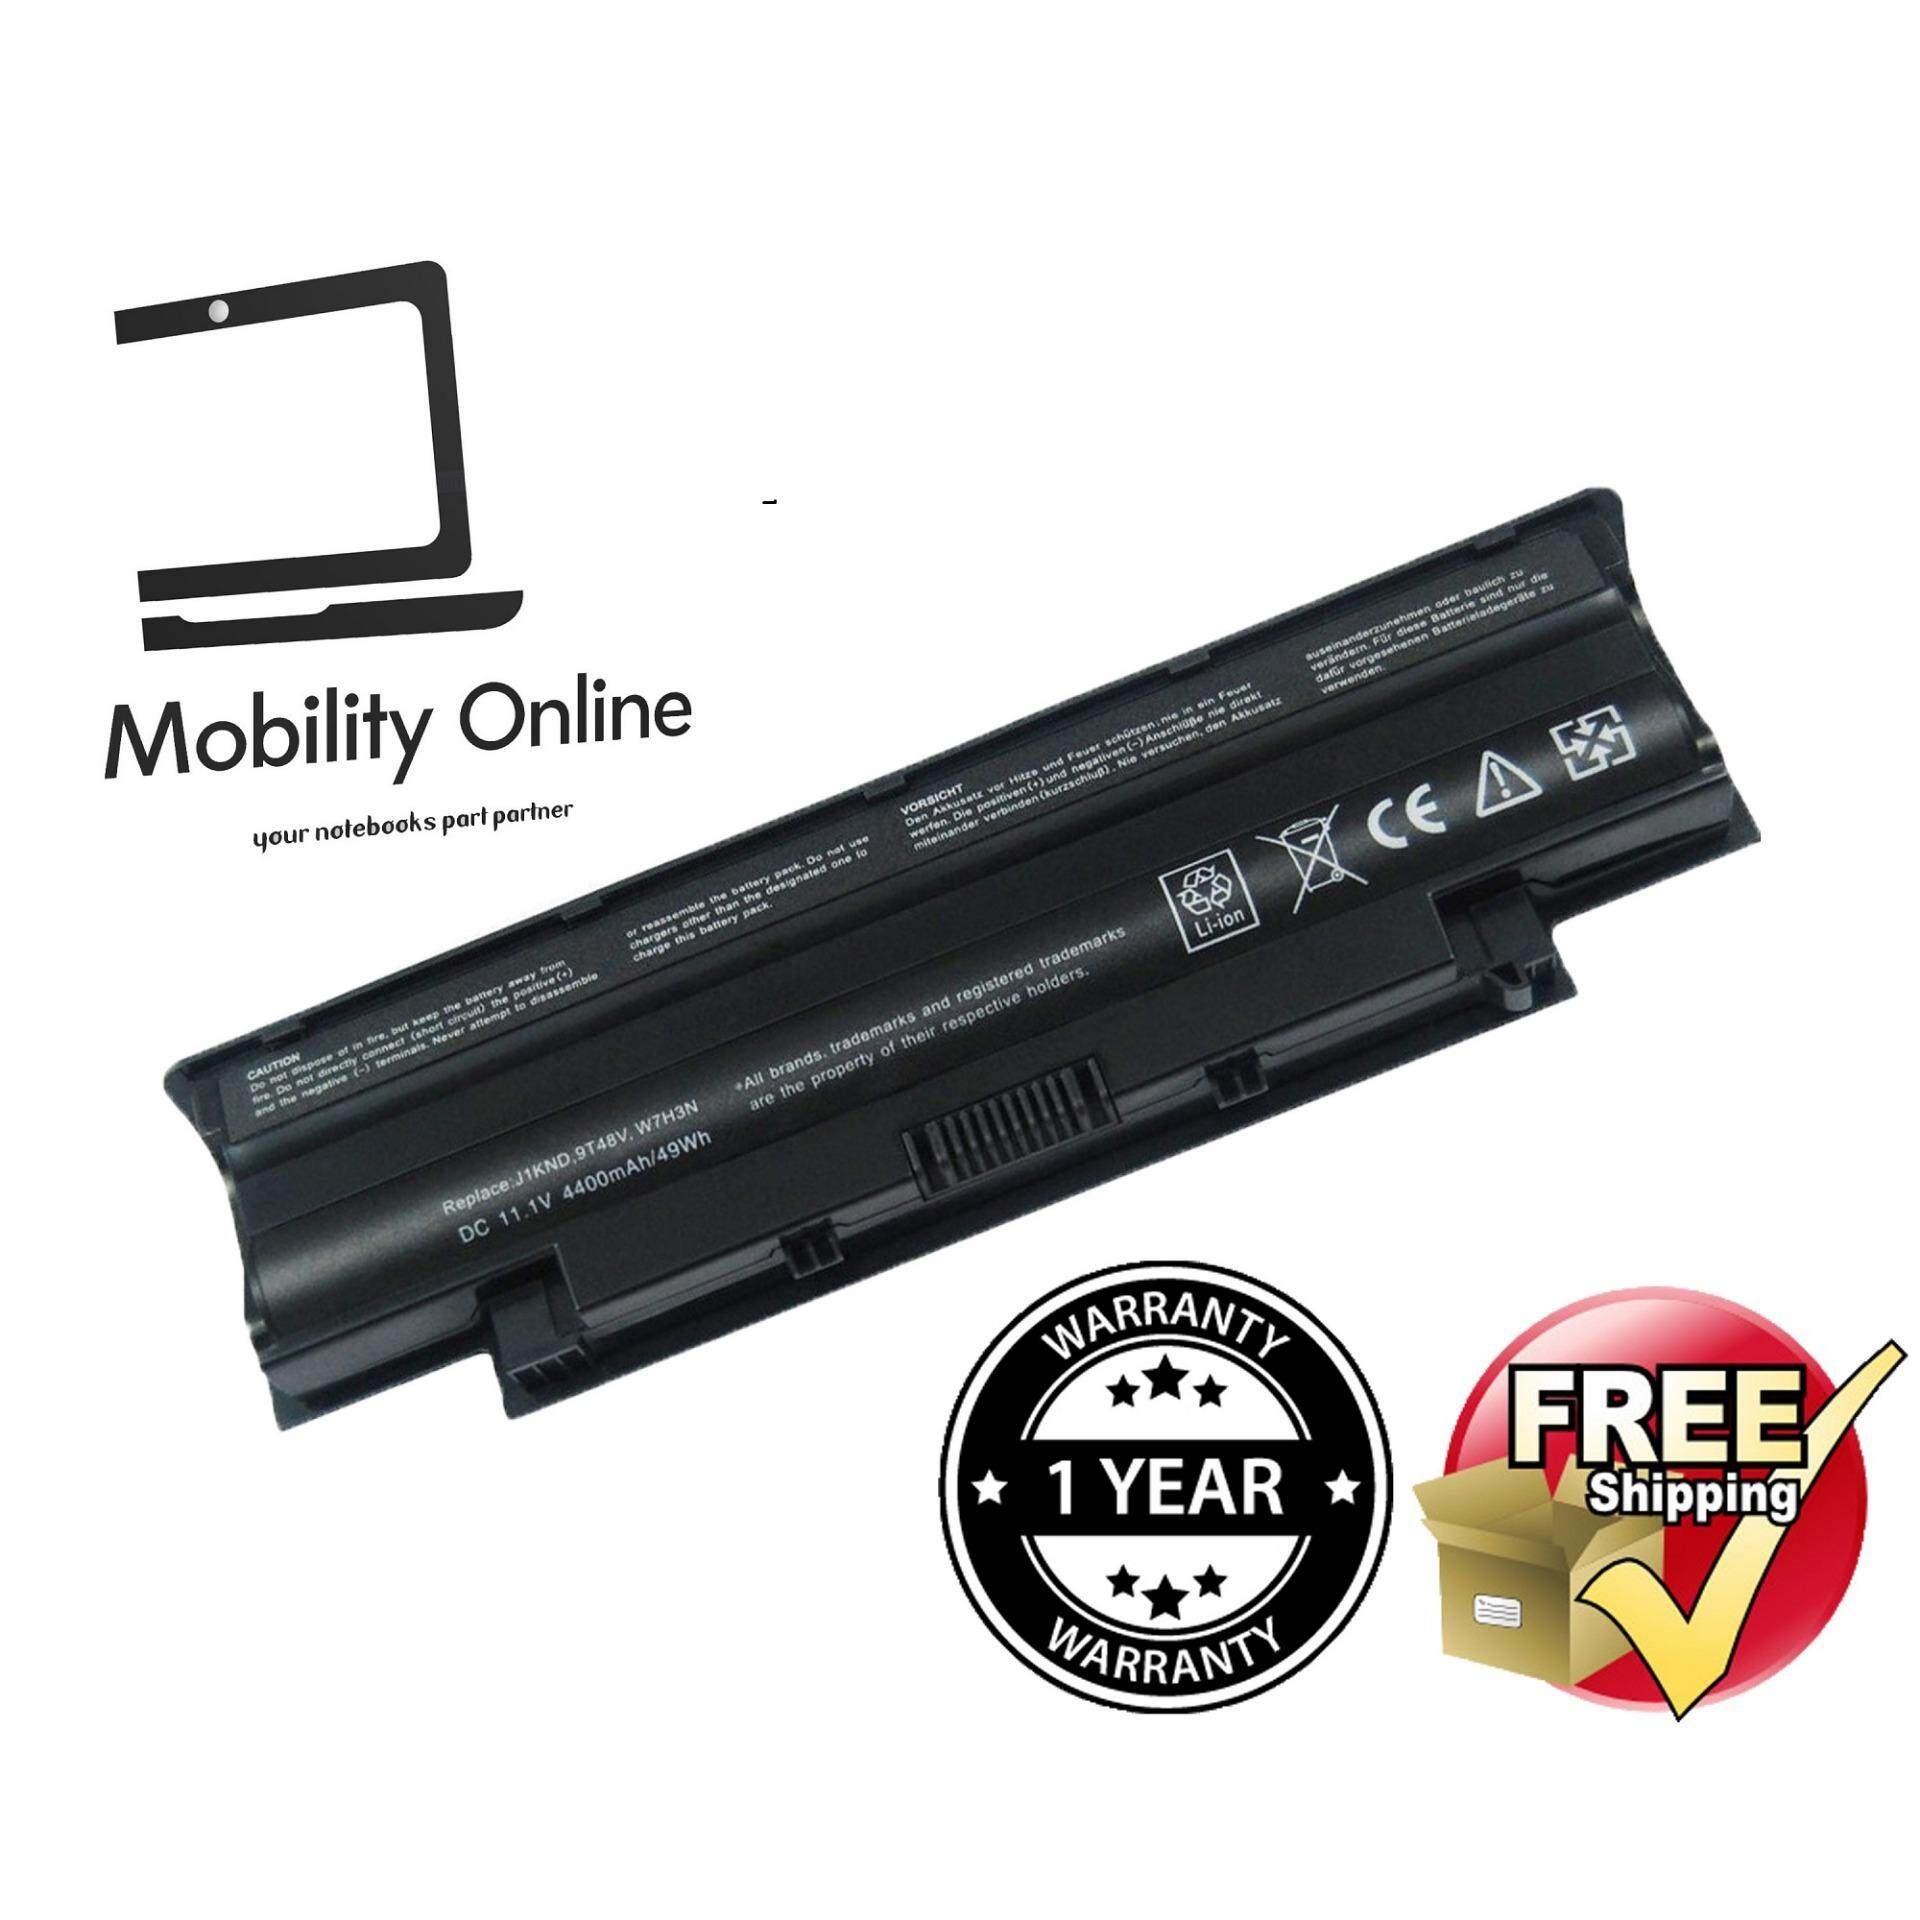 DELL INSPIRON N4010 Notebook Laptop Battery BTYDL201002 - N4010 Malaysia